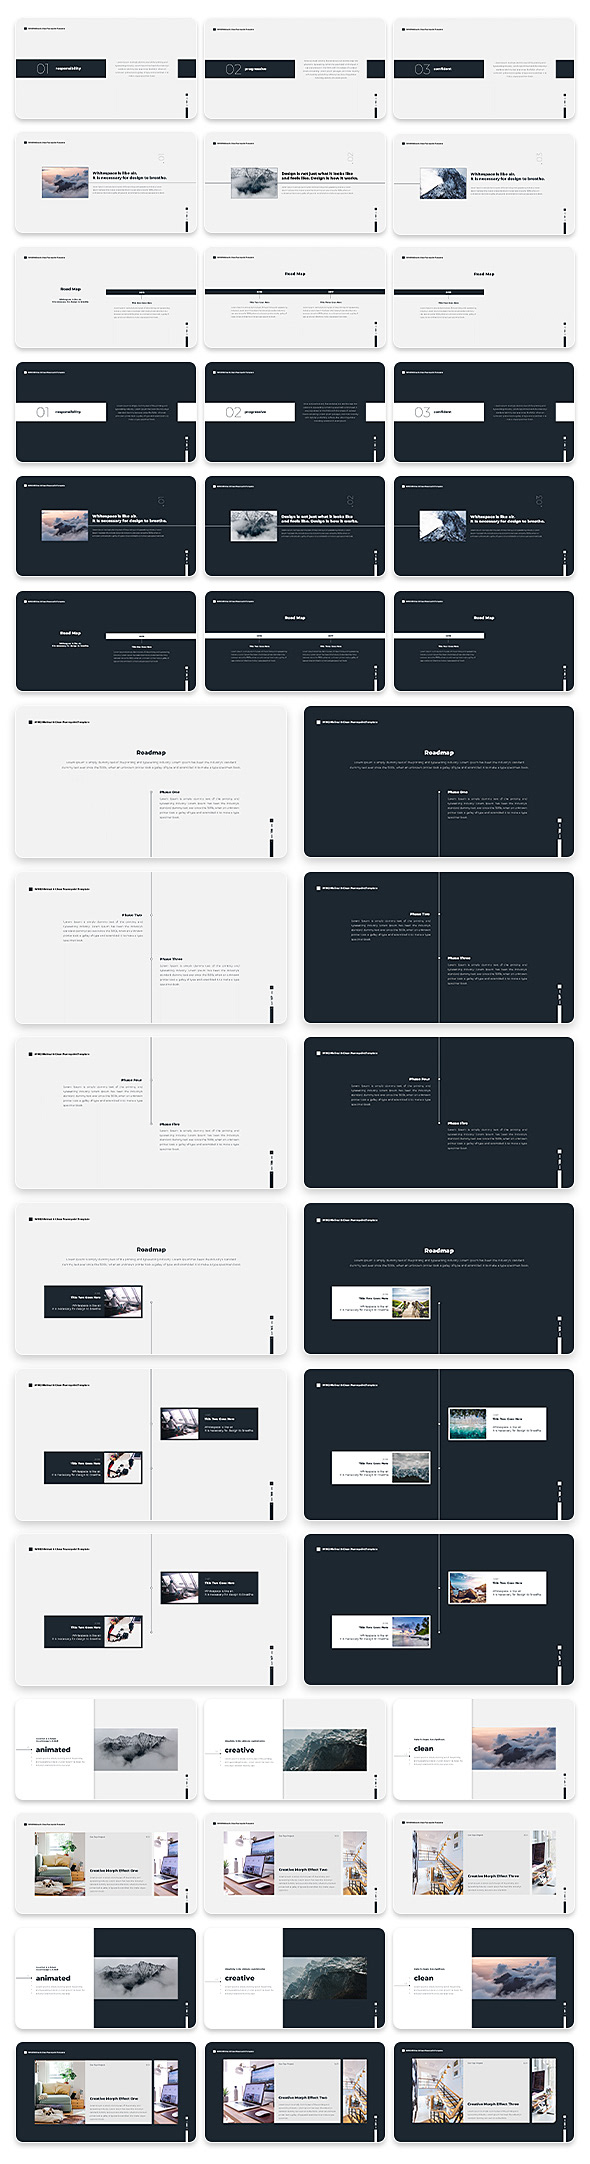 Wind Minimal & Clean Powerpoint With Text Animation Pack - 11